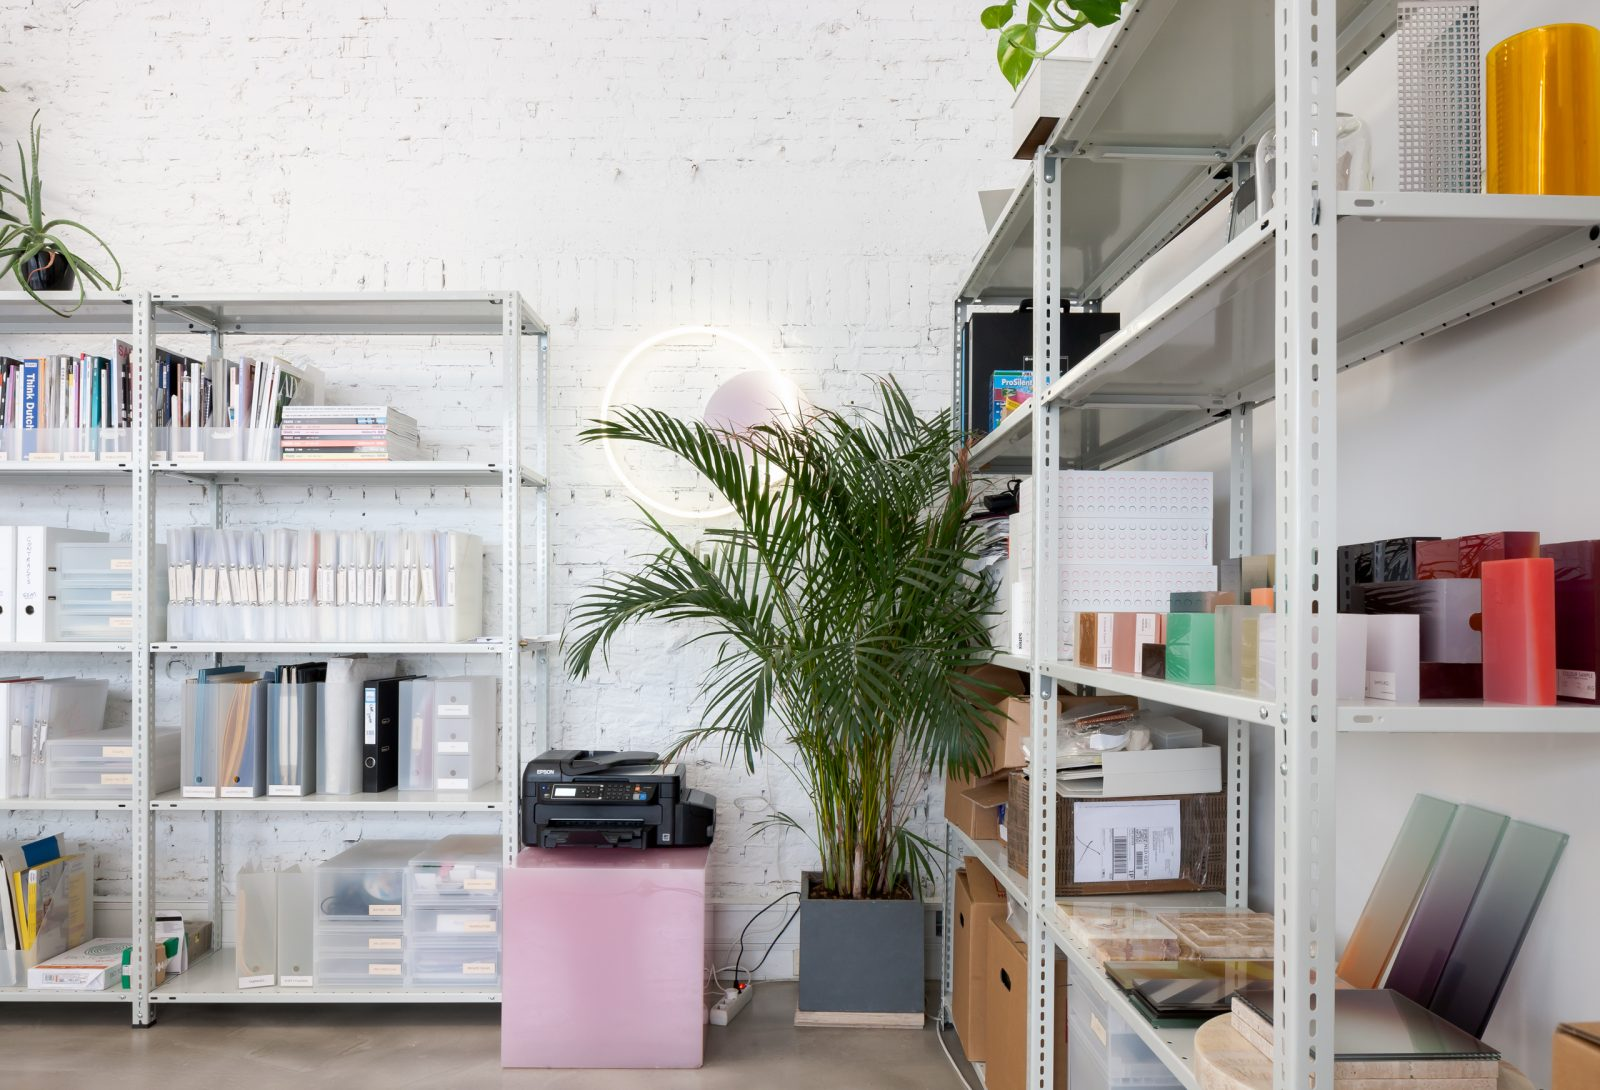 on the occasion of the interieur binnale 2018 i photographed the new offices of studio sabine marcelis in rotterdam